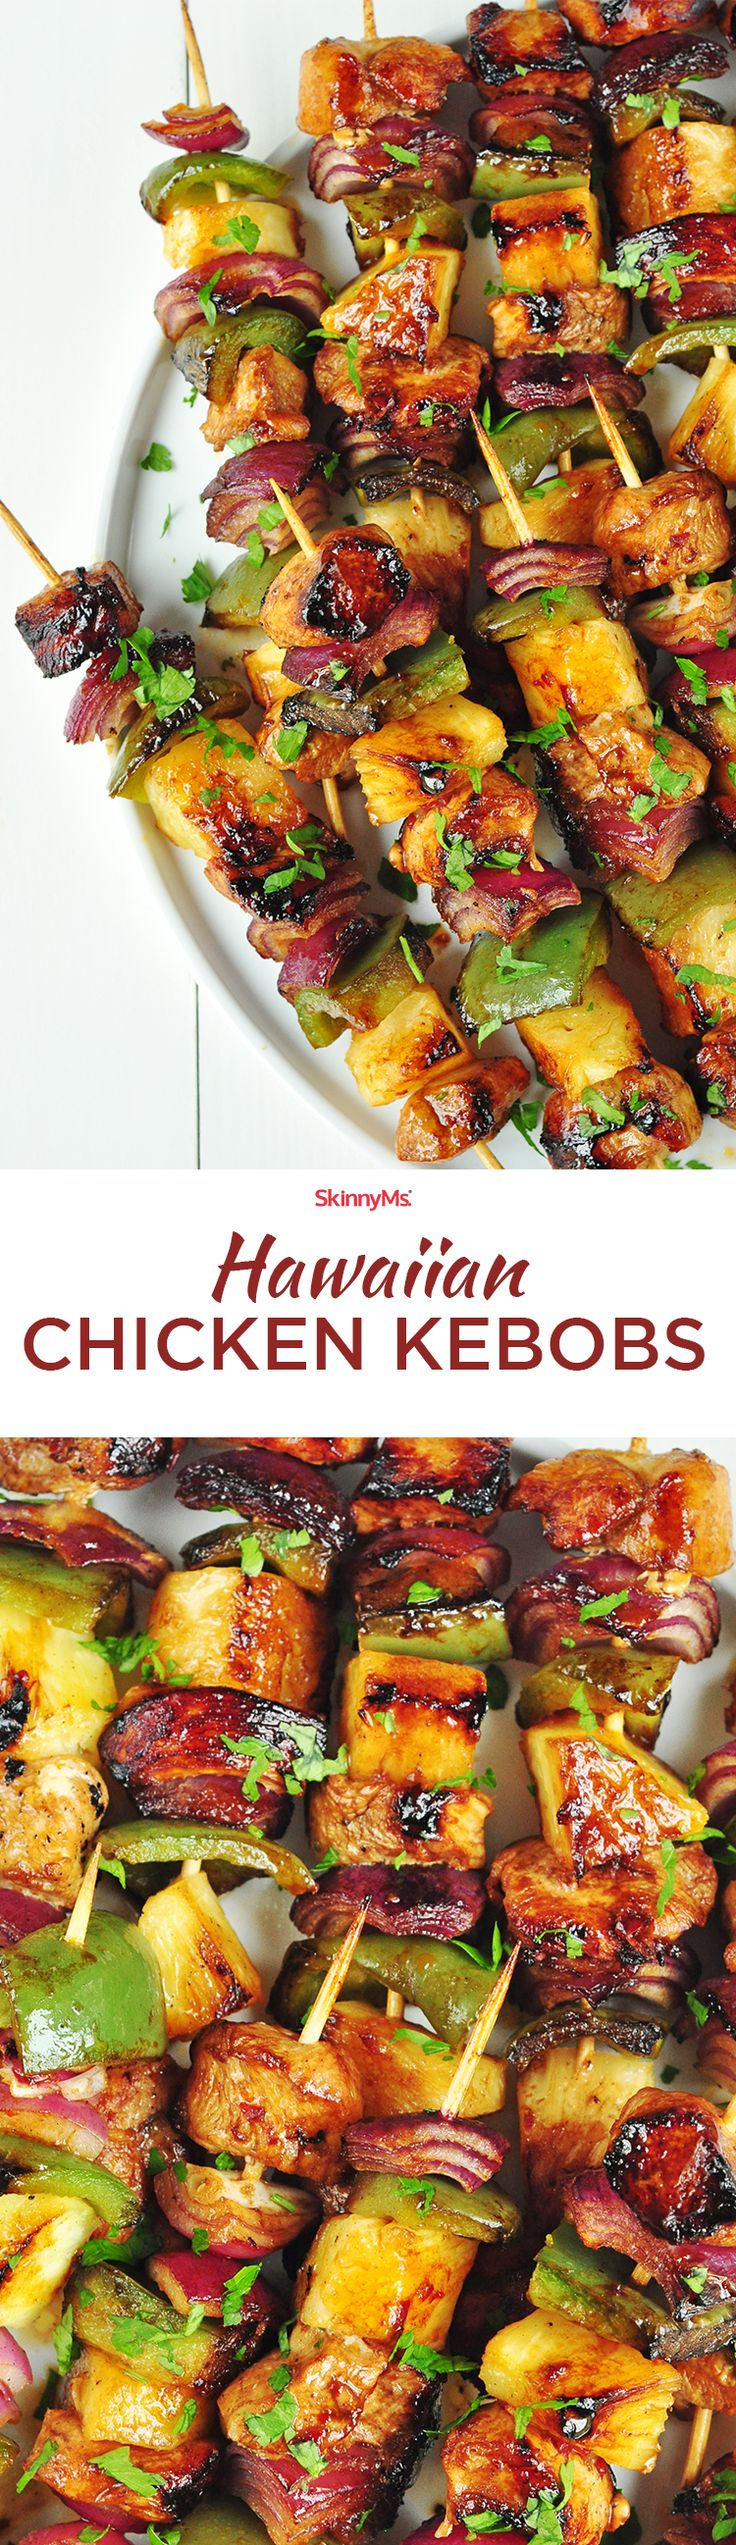 These Hawaiian Chicken Kebobs are everything! What better way is there to ring in the summer weather?